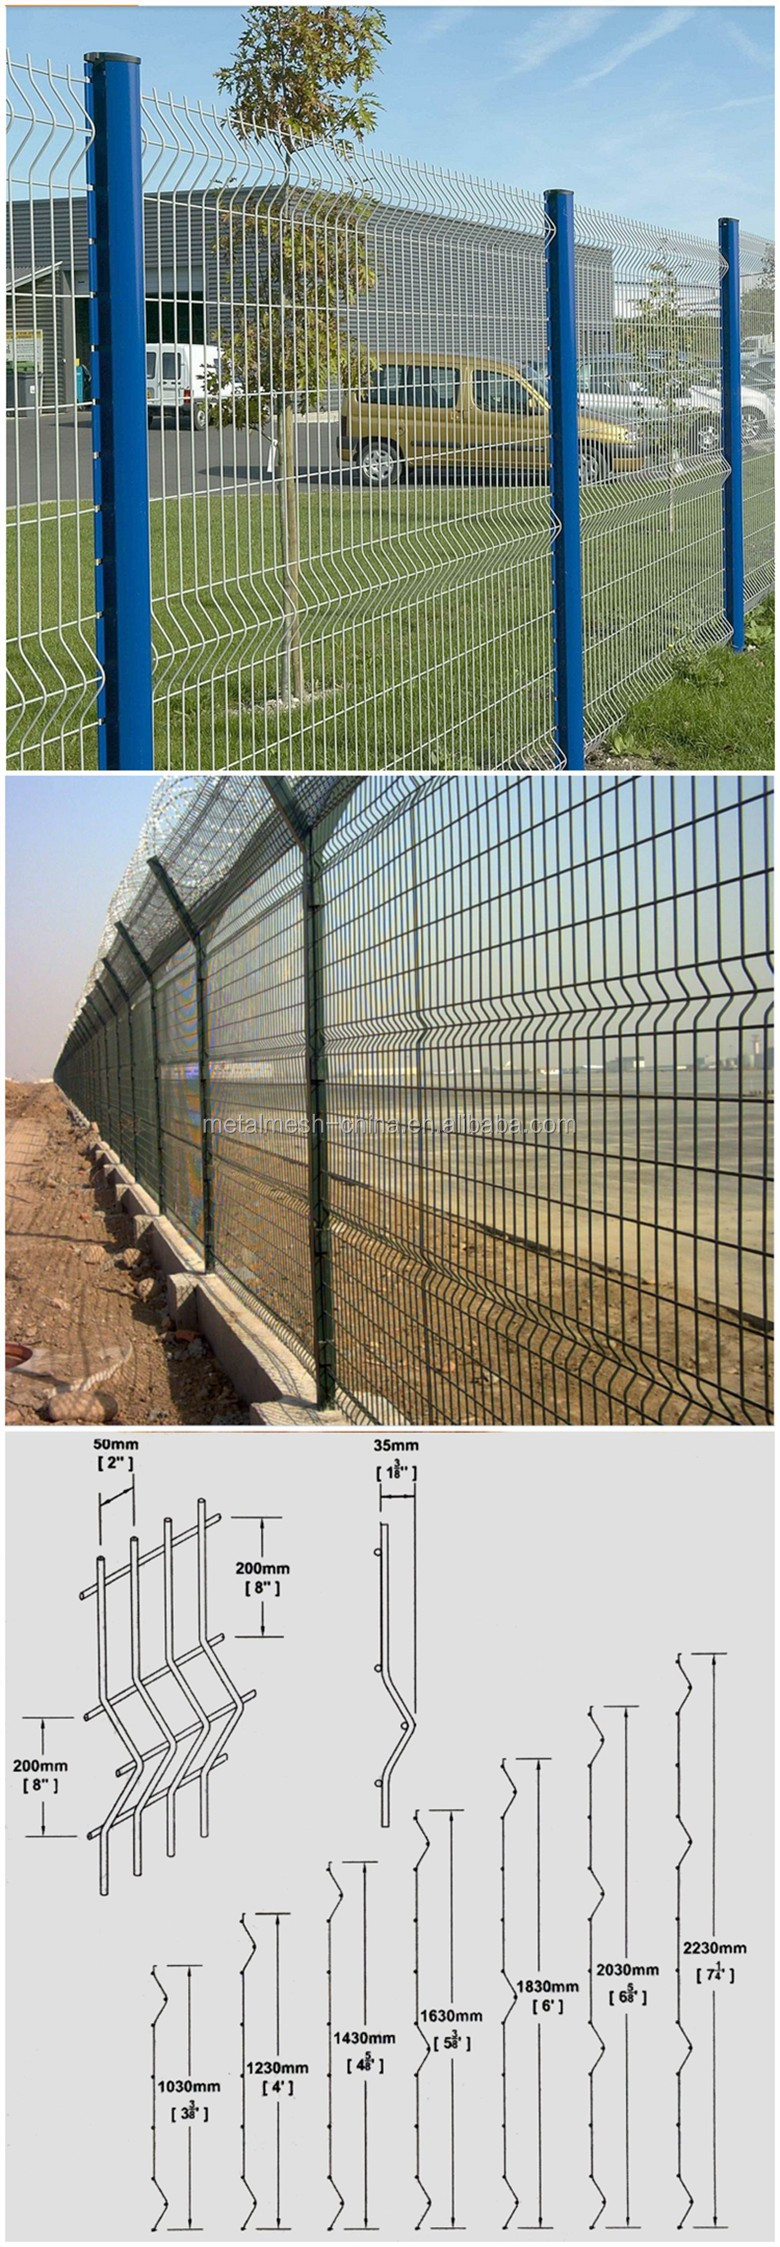 image of welded wire fence panels